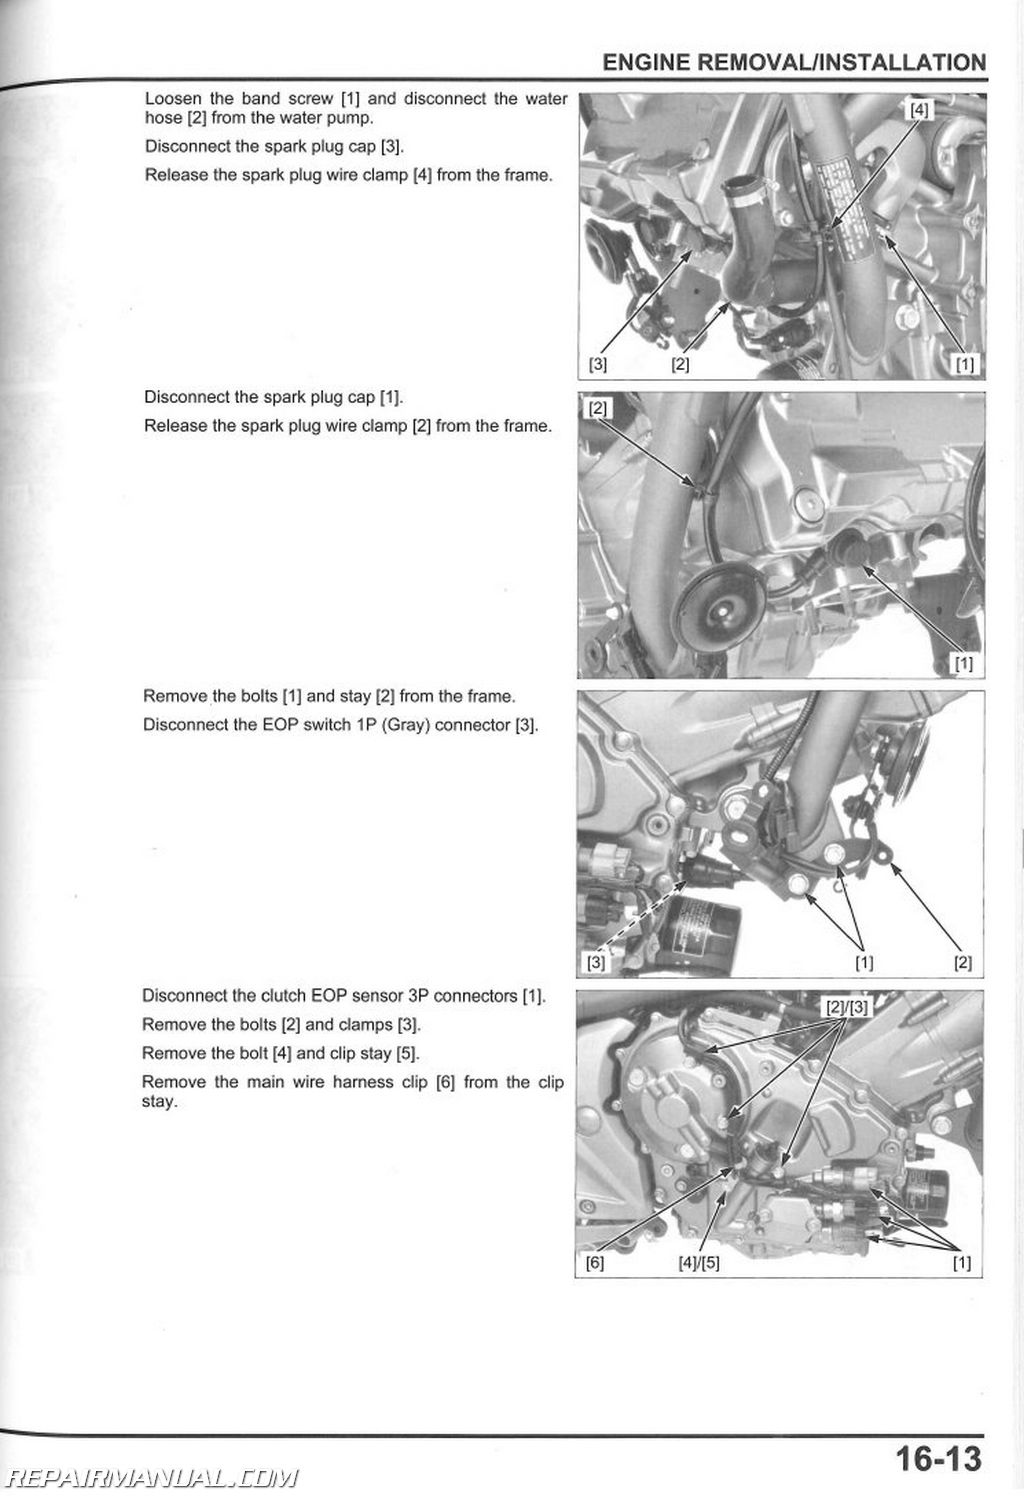 2012  nc750xa sa motorcycle service manual